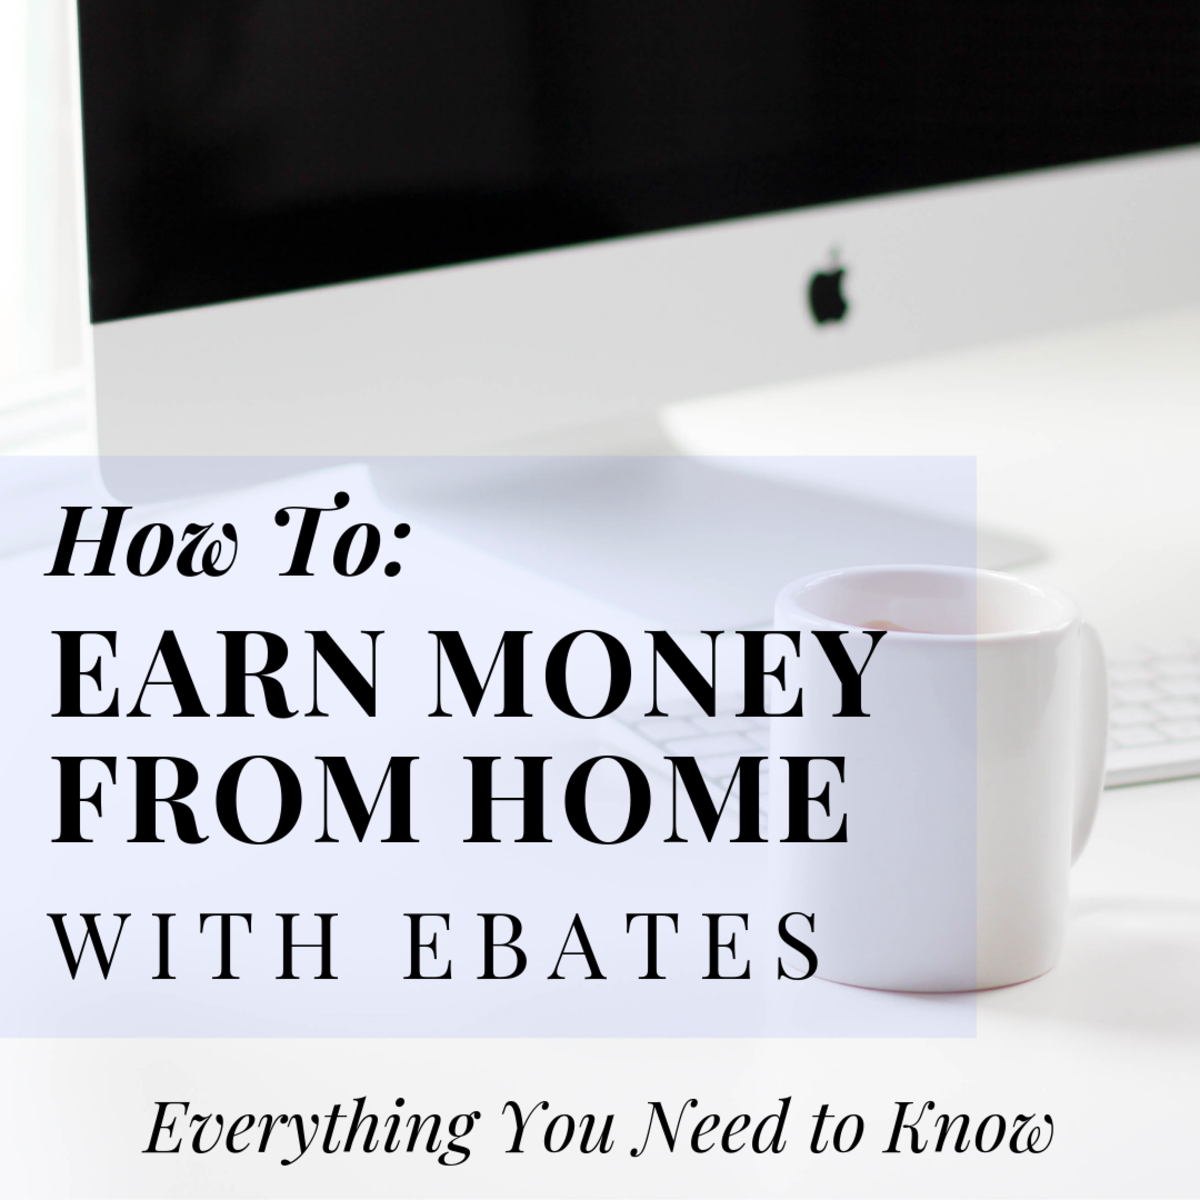 How to Earn Money From Home With Ebates